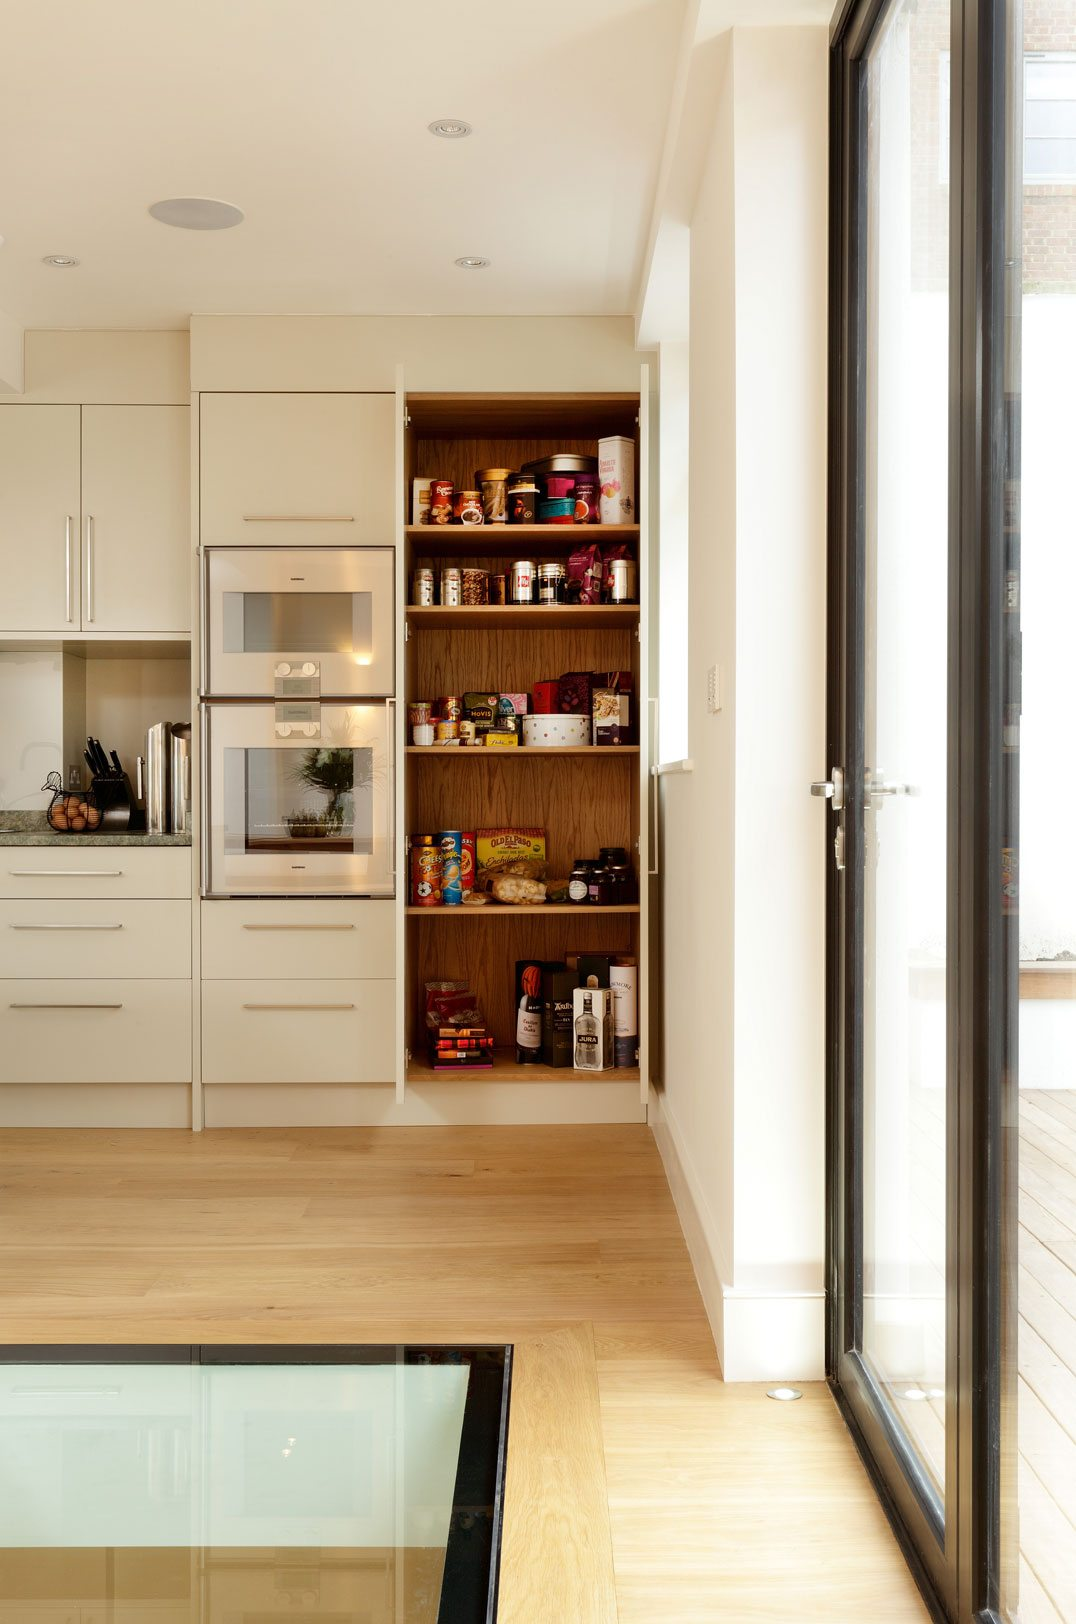 bespoke modern kitchen design shelving